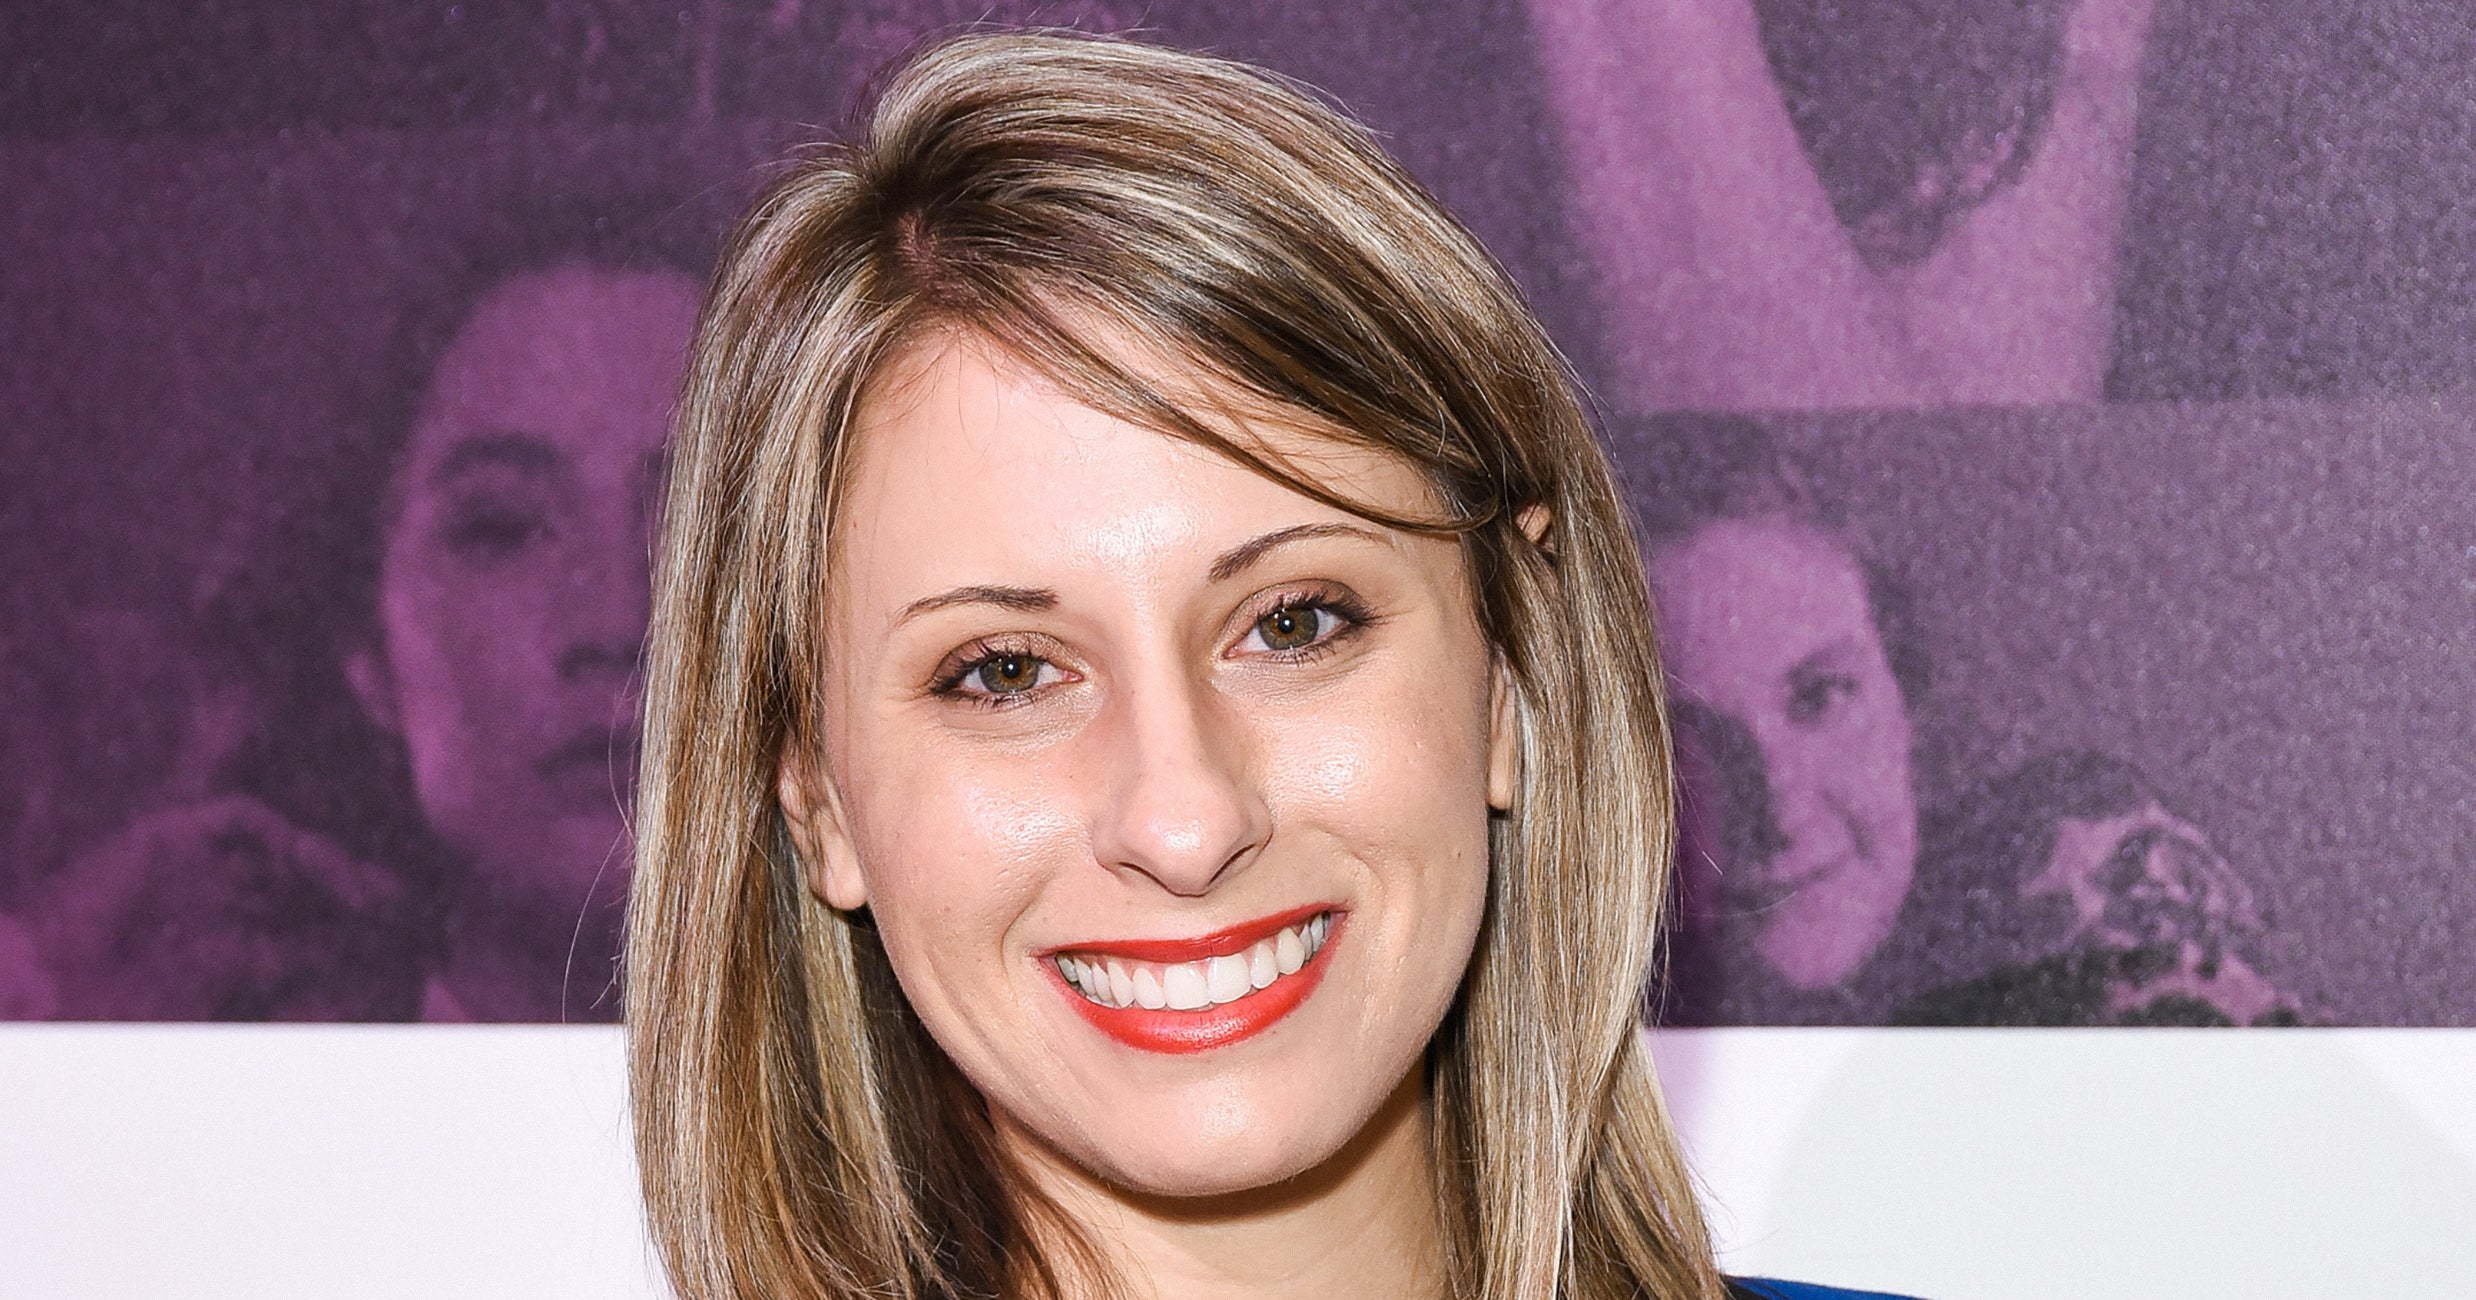 Katie Hill Tweets That She Kind Of Deserves Credit For The House Hunters Throuple Episode